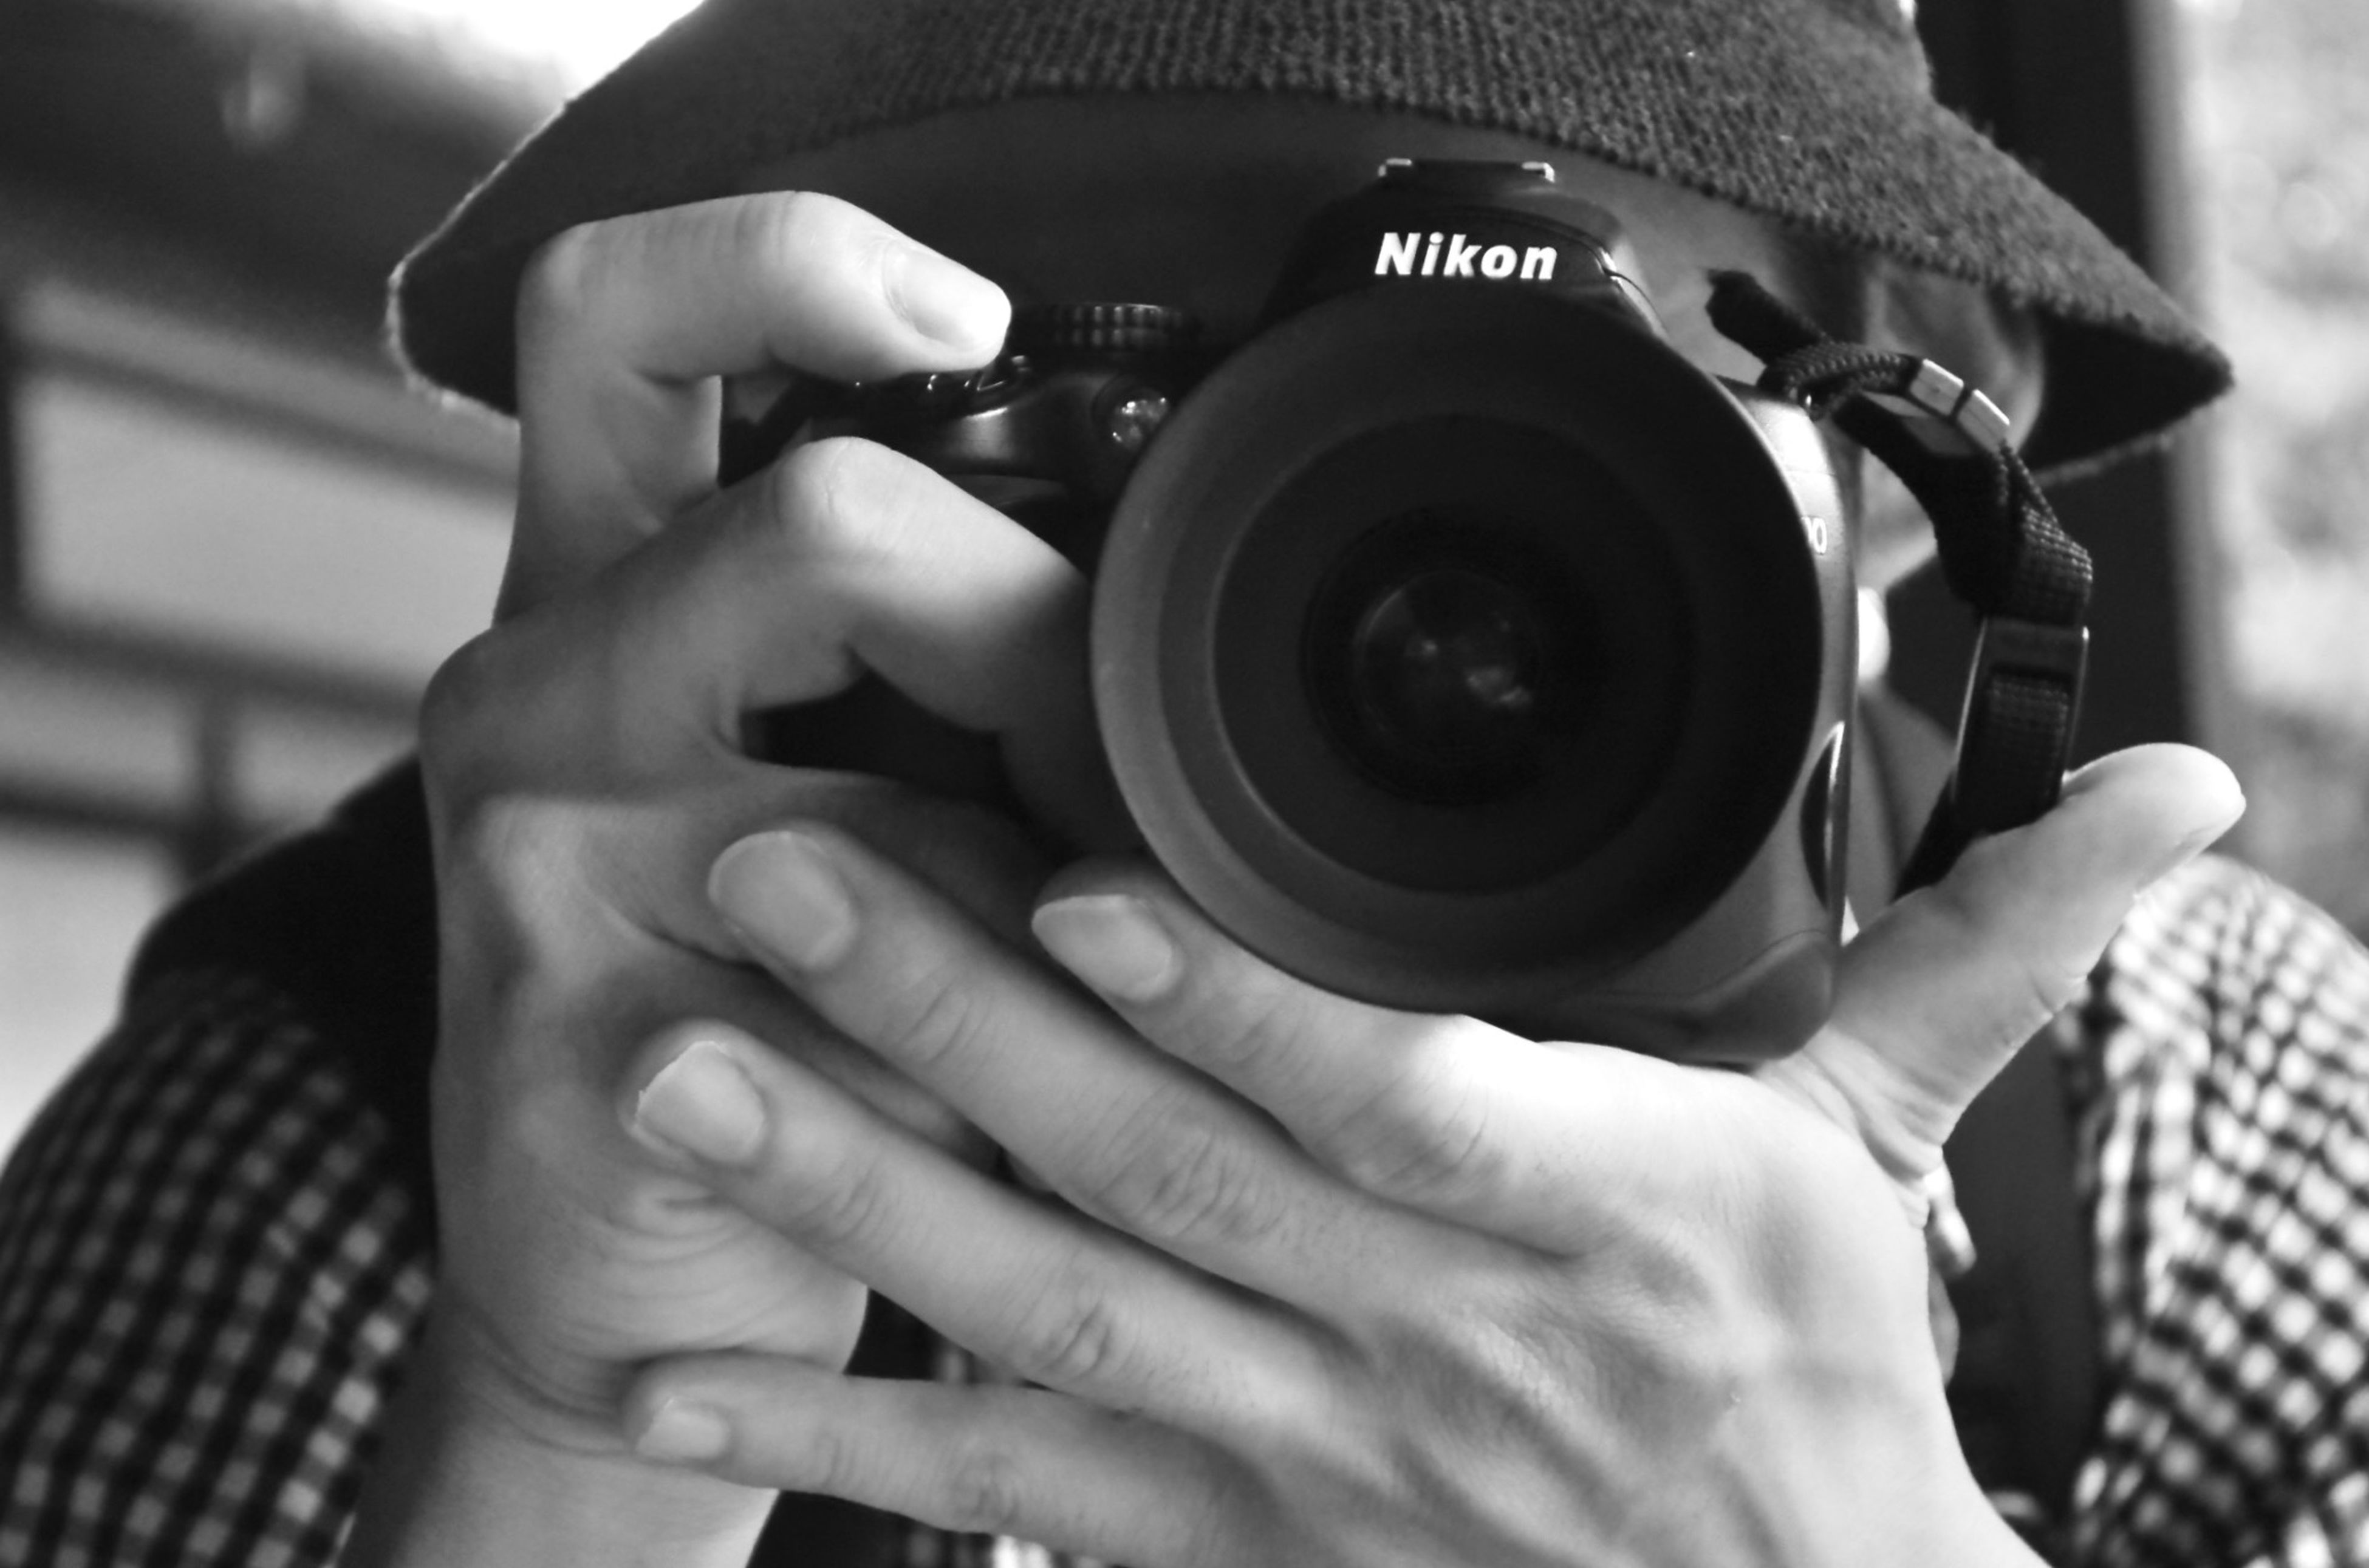 person, holding, part of, lifestyles, cropped, focus on foreground, close-up, leisure activity, photography themes, camera - photographic equipment, technology, digital camera, photographing, men, human finger, unrecognizable person